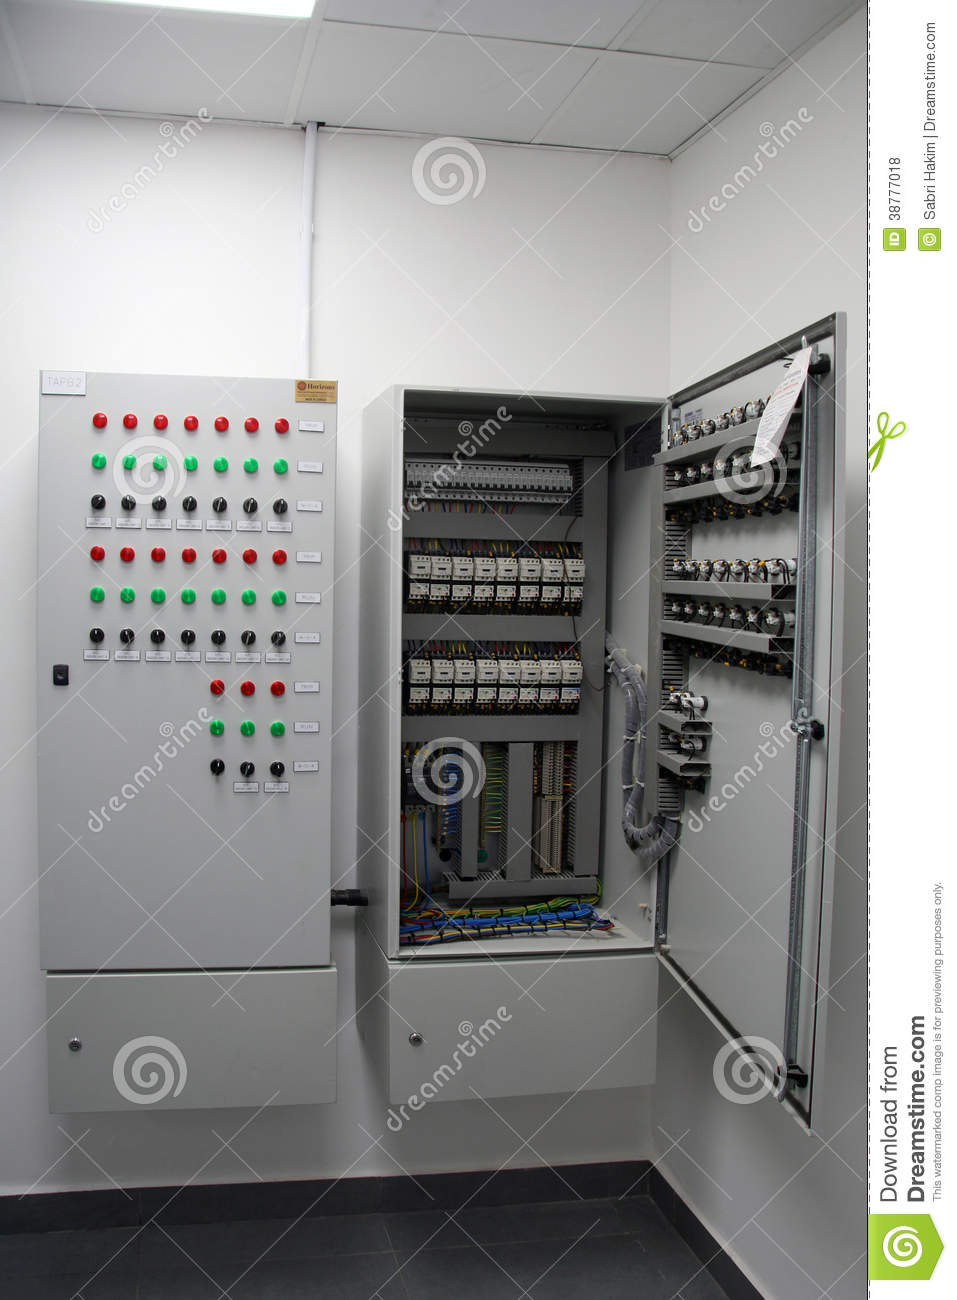 Electrical Cabinet Stock Photo  Image Of Electronic  Switches